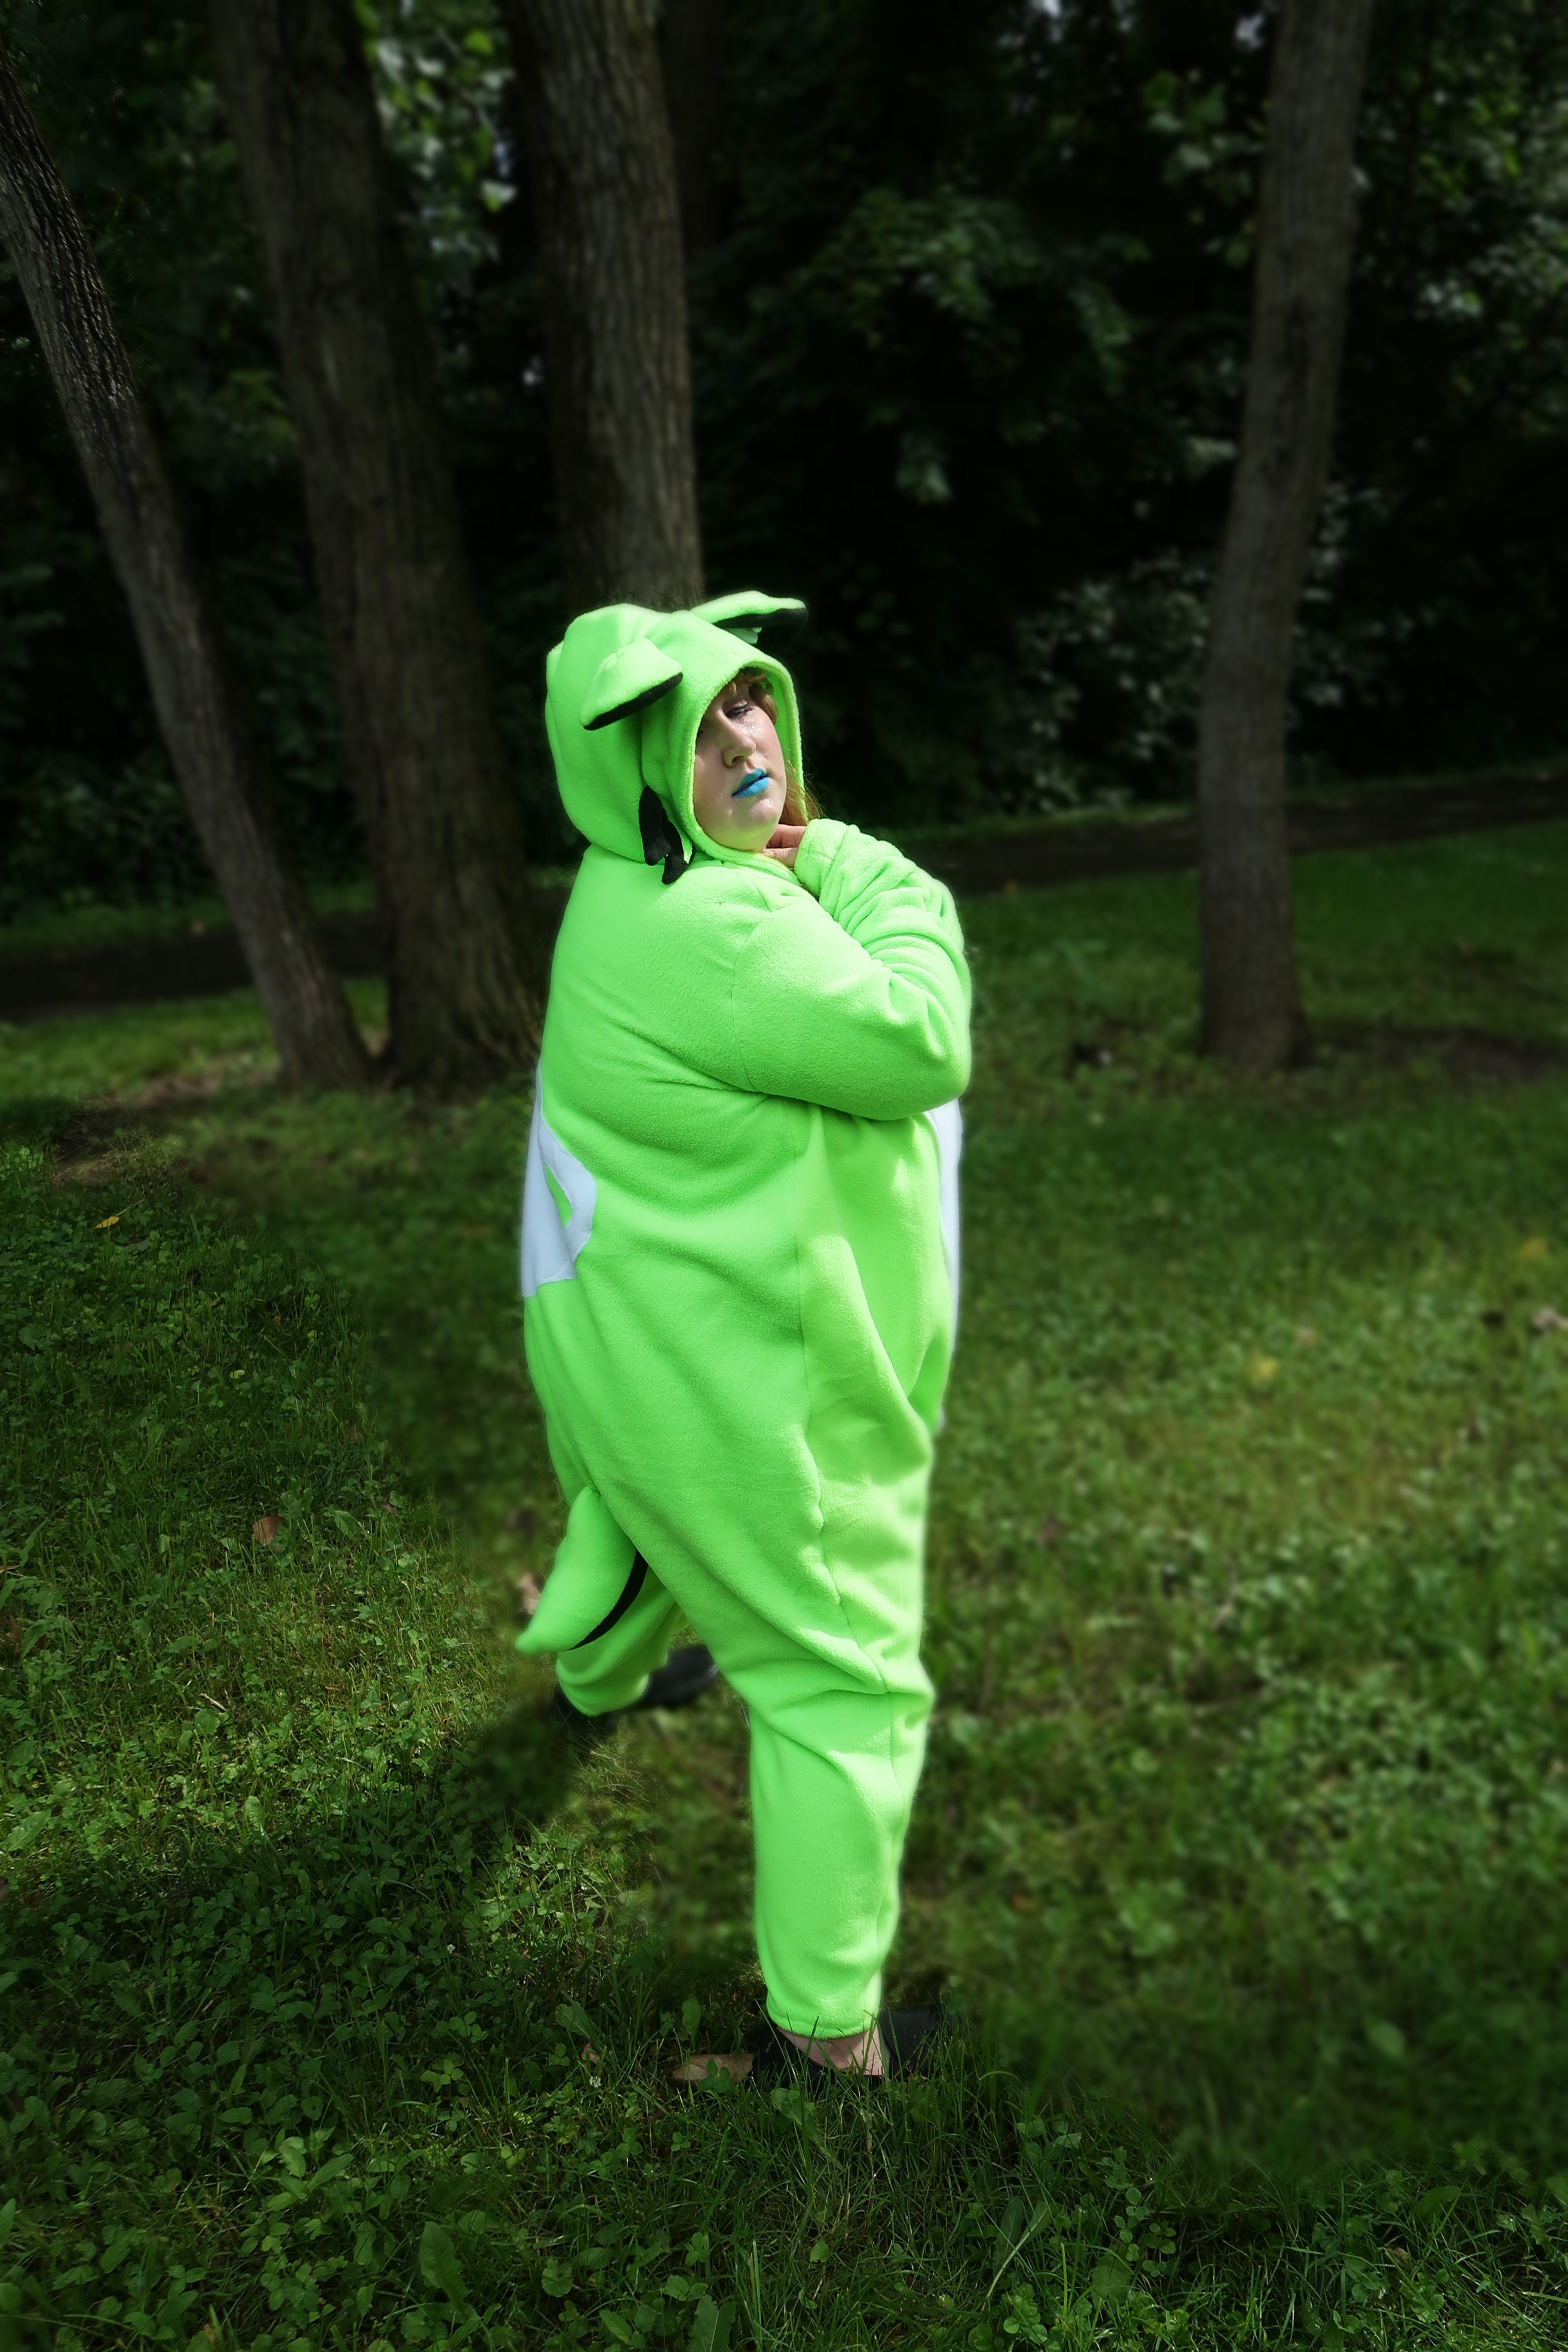 obletop-promotional-phtography-kigu-full-body-by-connor-goodwolf